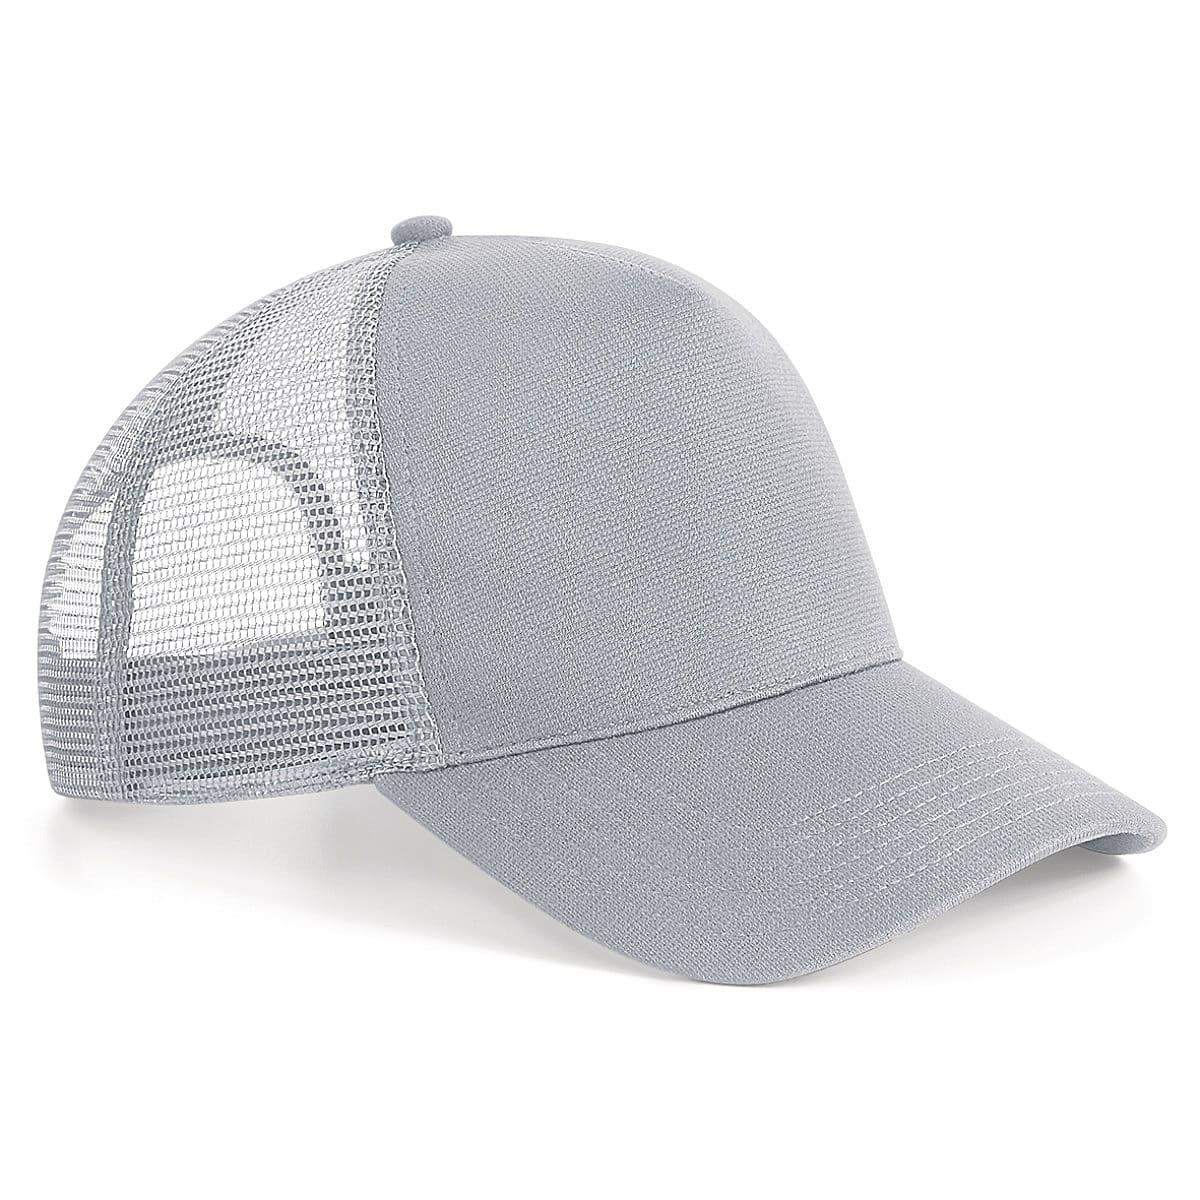 Beechfield Microknit Snapback Trucker Cap in Light Grey (Product Code: B642)